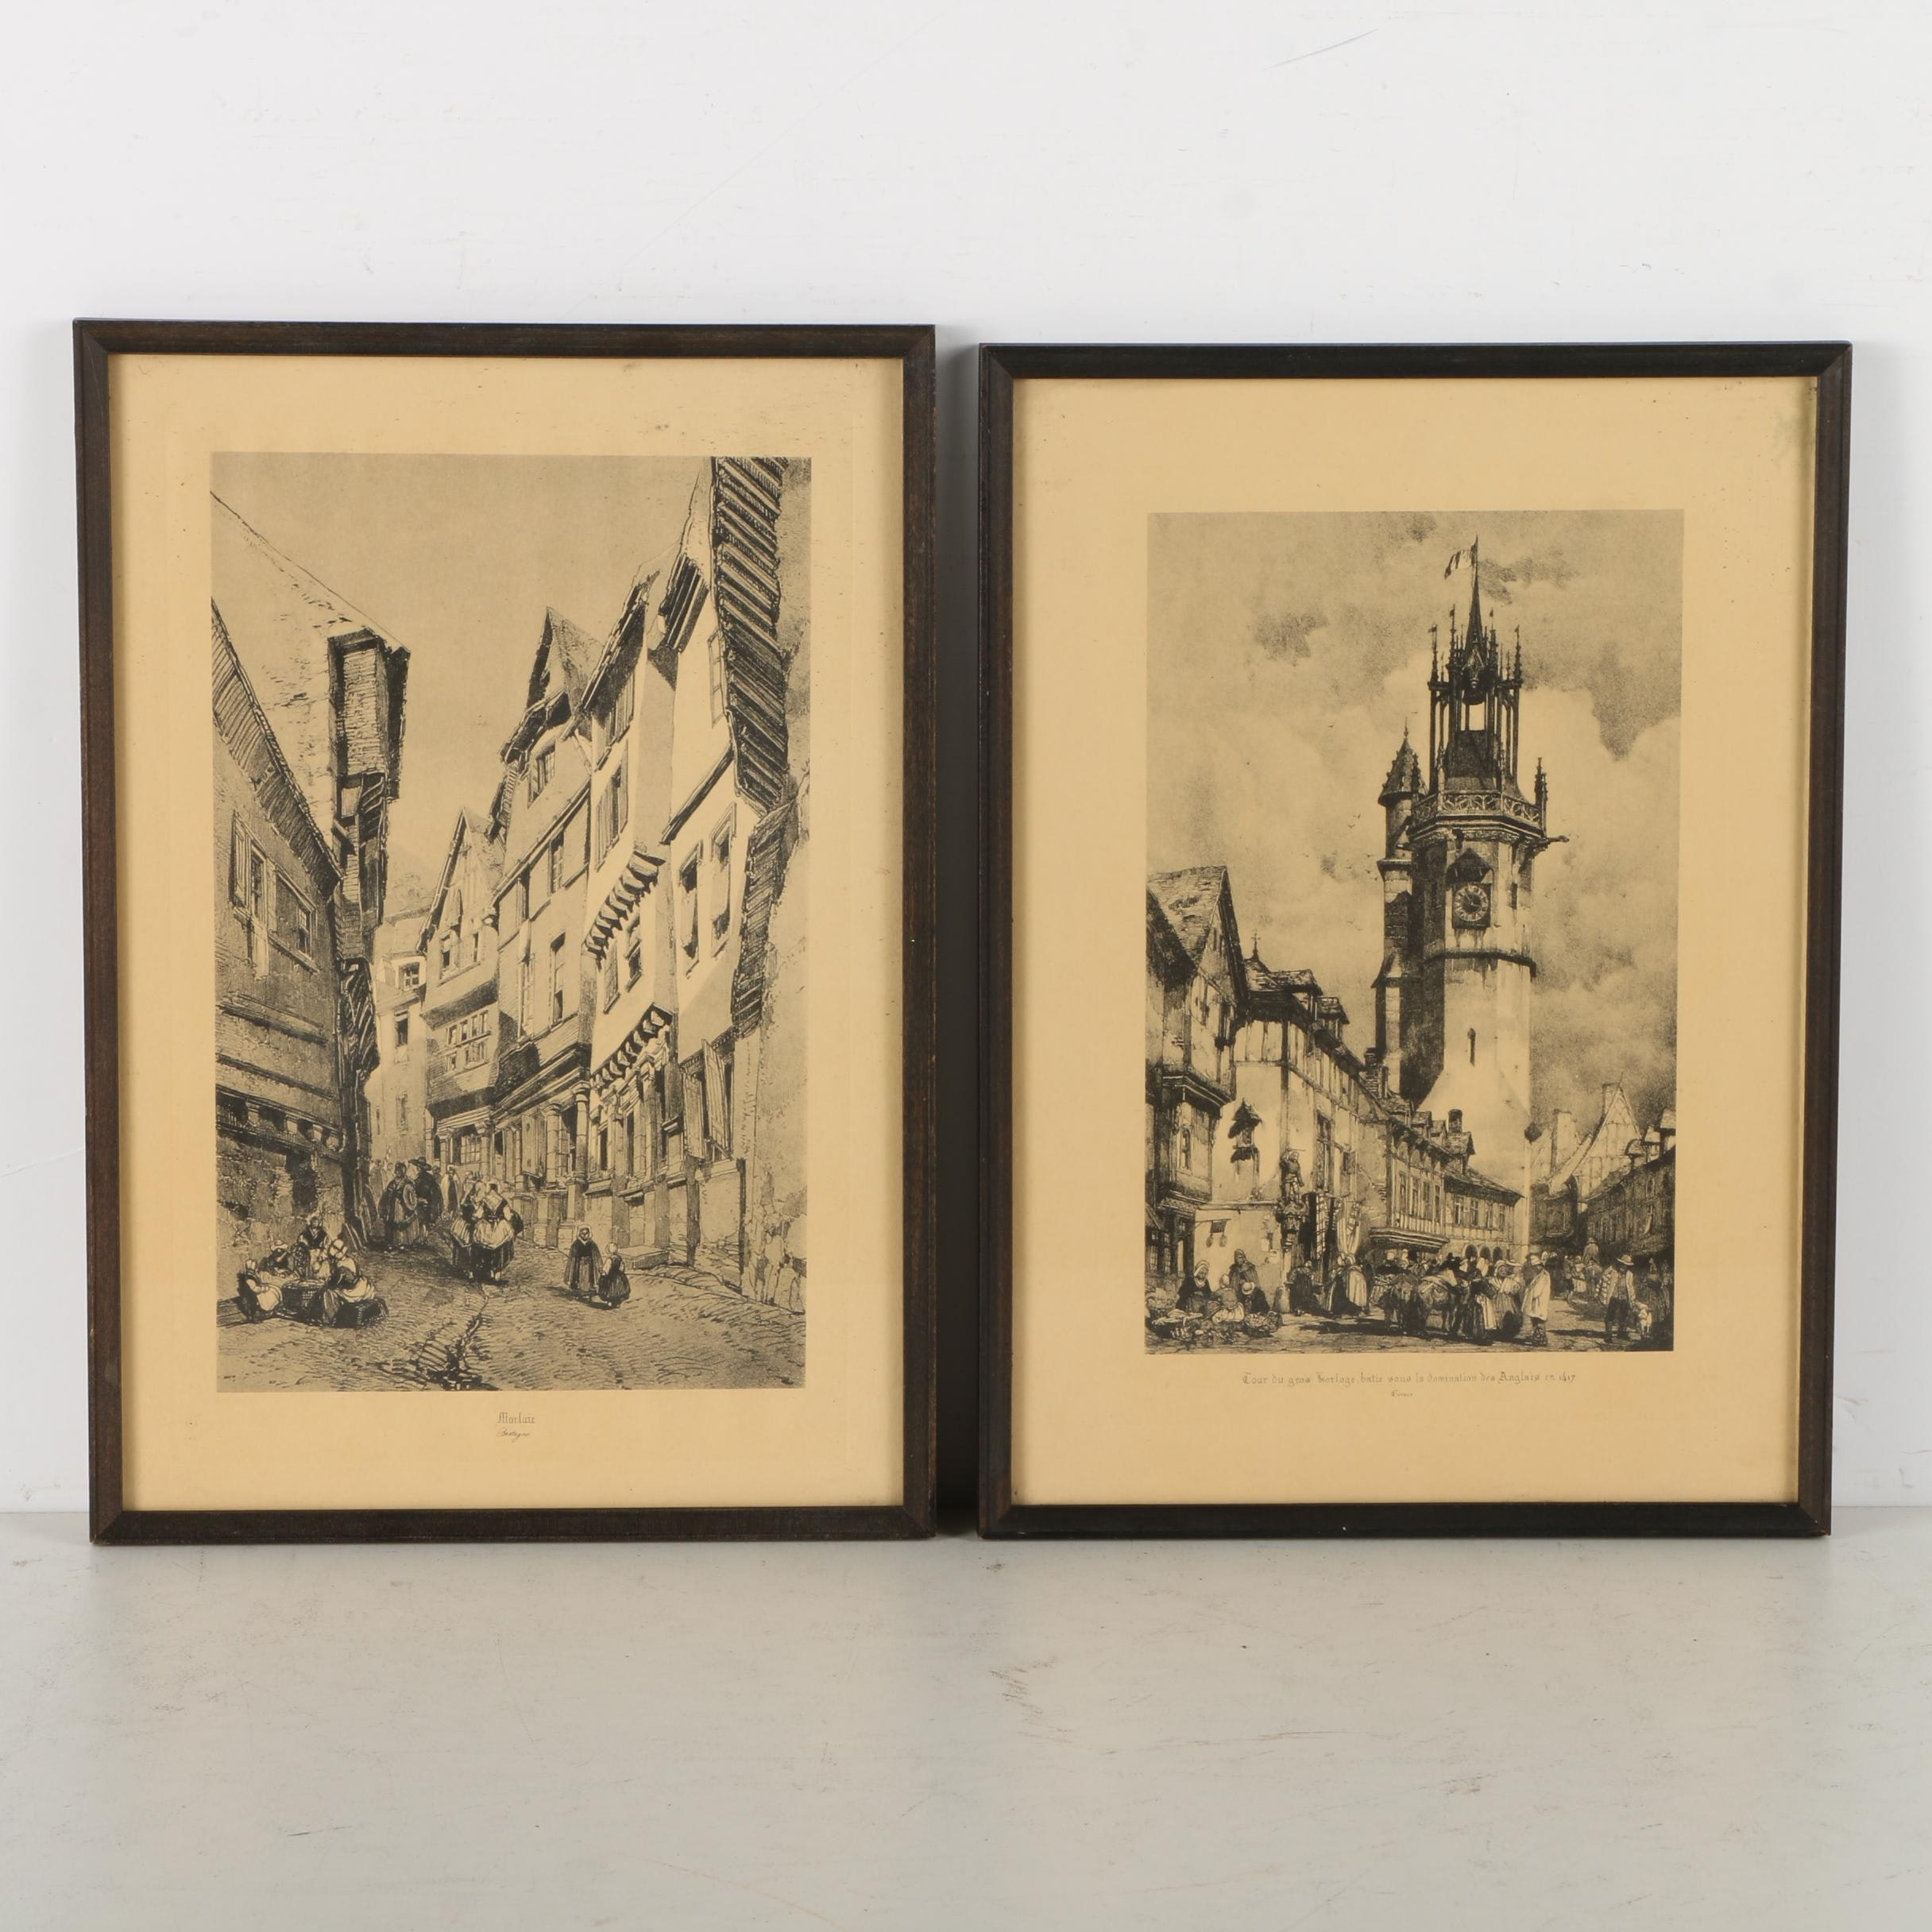 Collection of Lithograph Prints on Paper of French Street Scenes